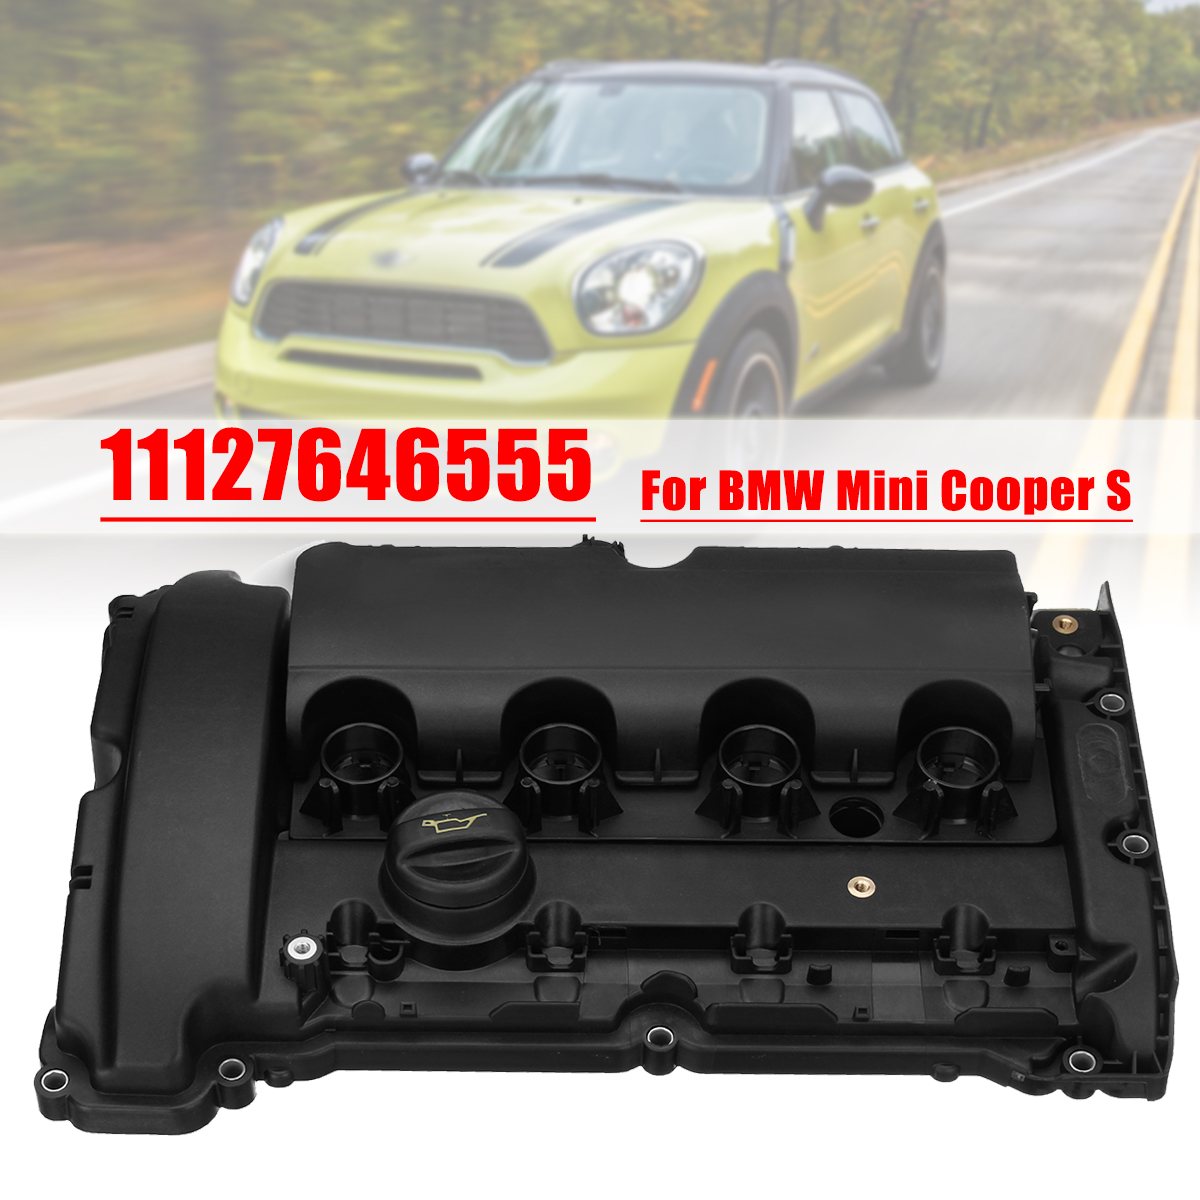 en title1:Engine Valve Cover Gasket Set for BMW for Mini Cooper S R55 R56 R57 R58 11127646555 11127585907 11127572854|Valve Covers| |  - title=